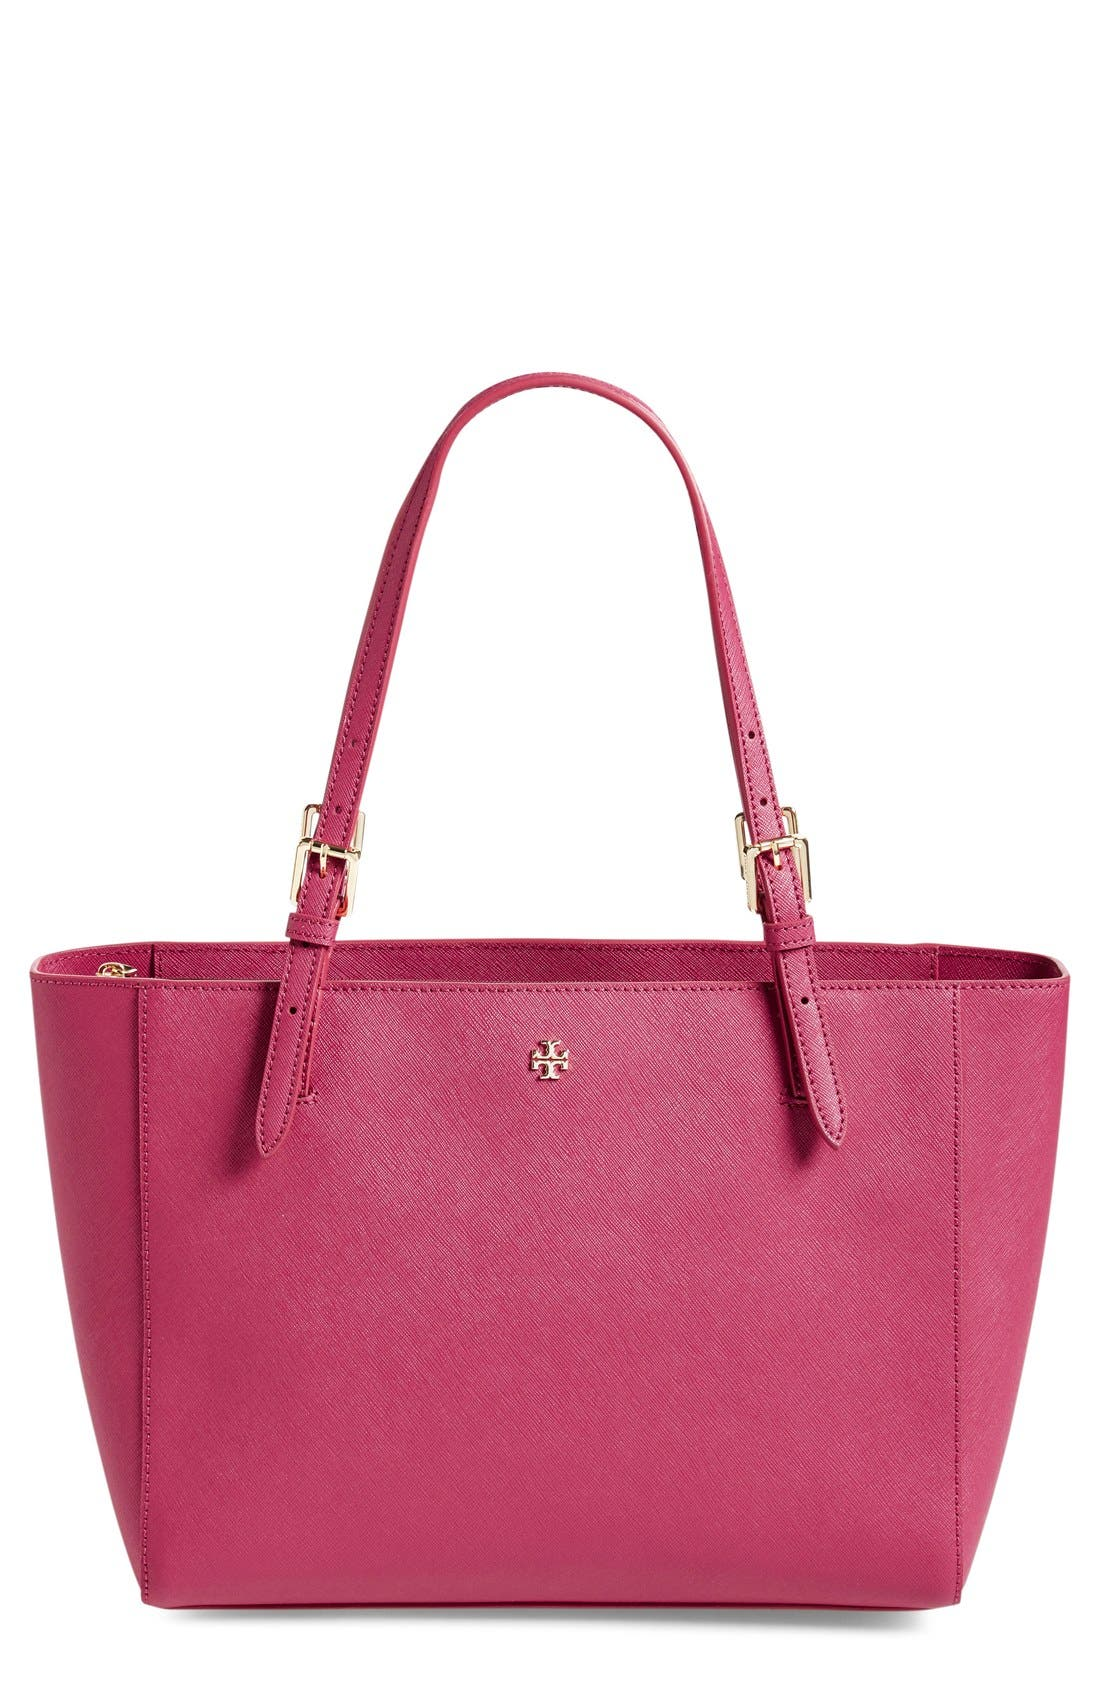 'Small York' Saffiano Leather Buckle Tote,                             Main thumbnail 14, color,